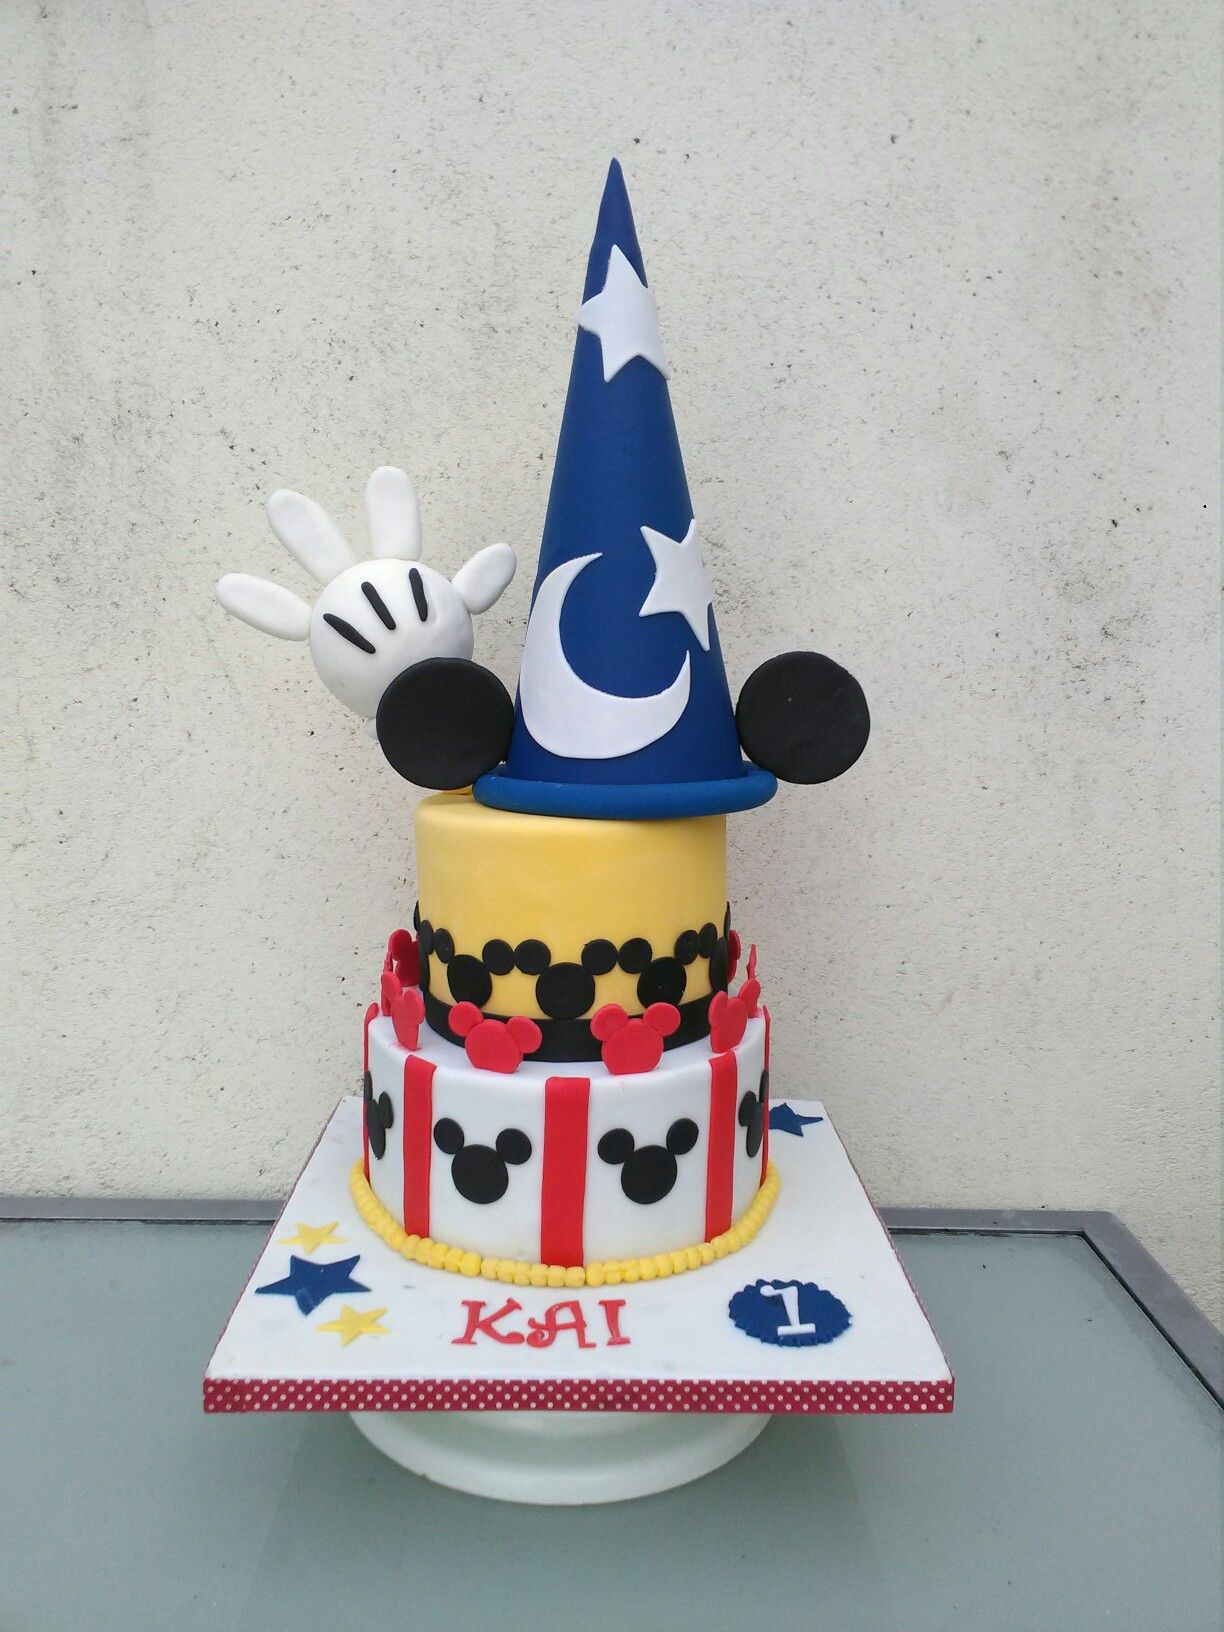 Mickey mouse first birthday cake with fantasia hat From the